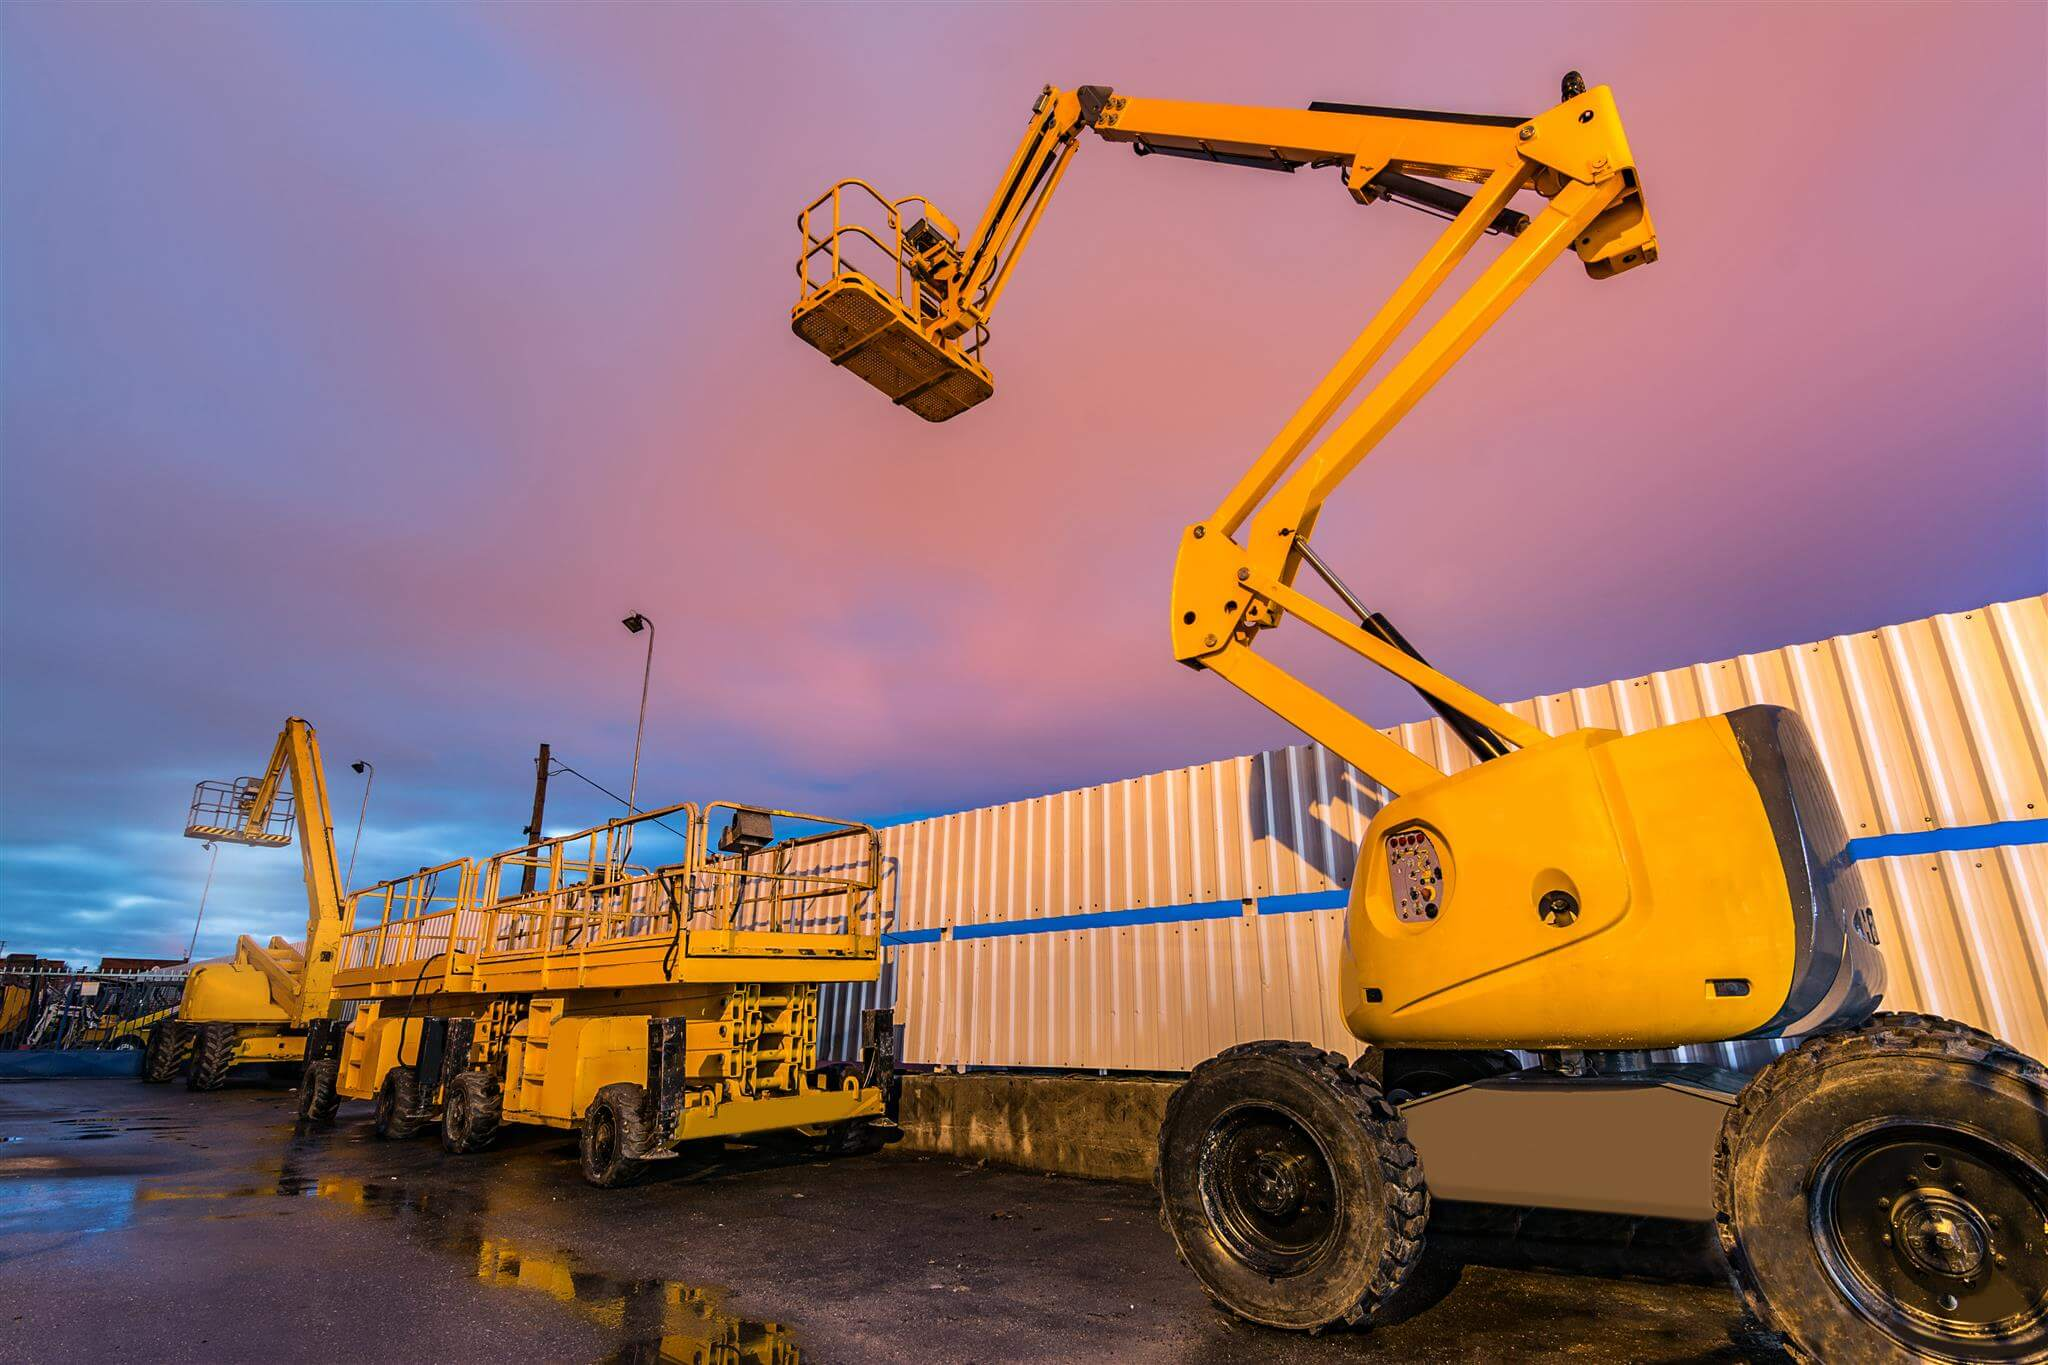 Boom lifts, scissor lifts and telehandlers: characteristics and information to know them